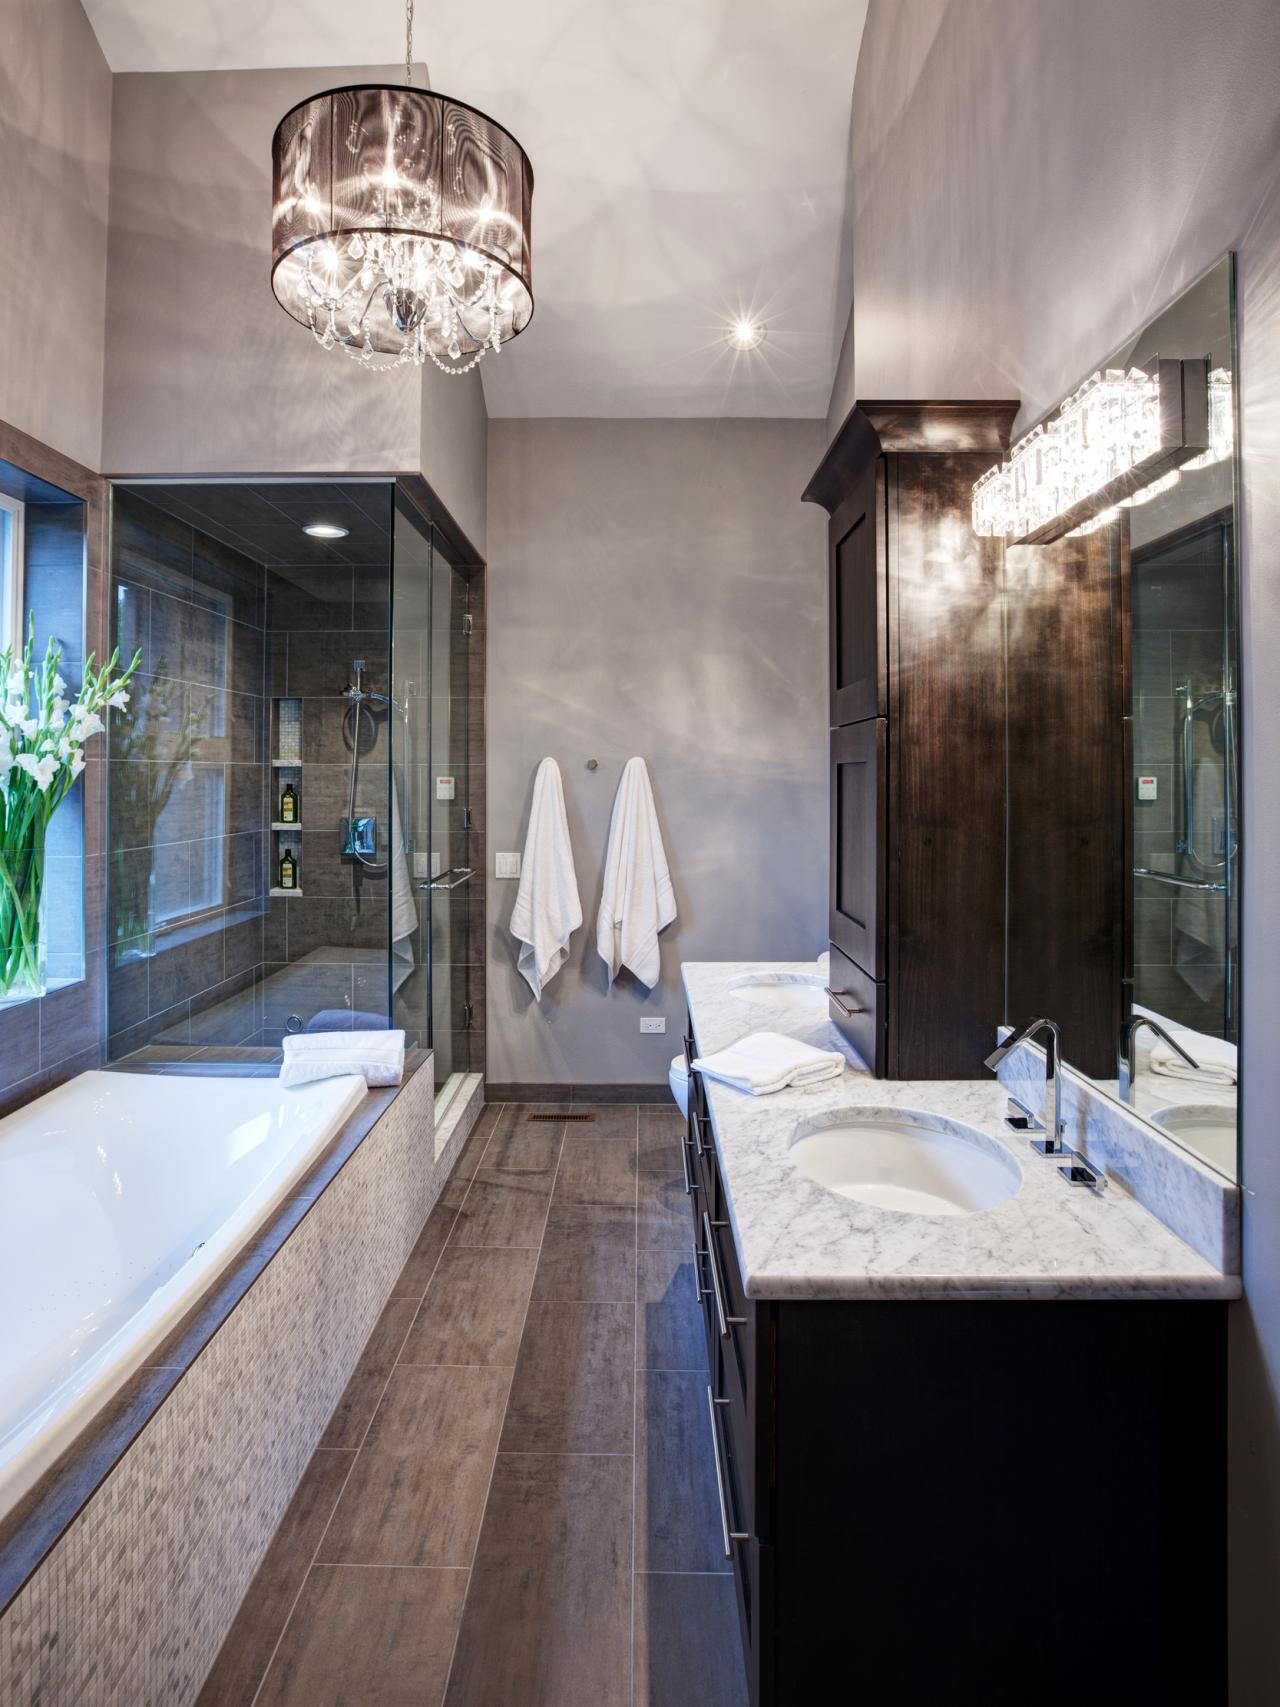 bathroom decorating tips & ideas + pictures from hgtv | hgtv